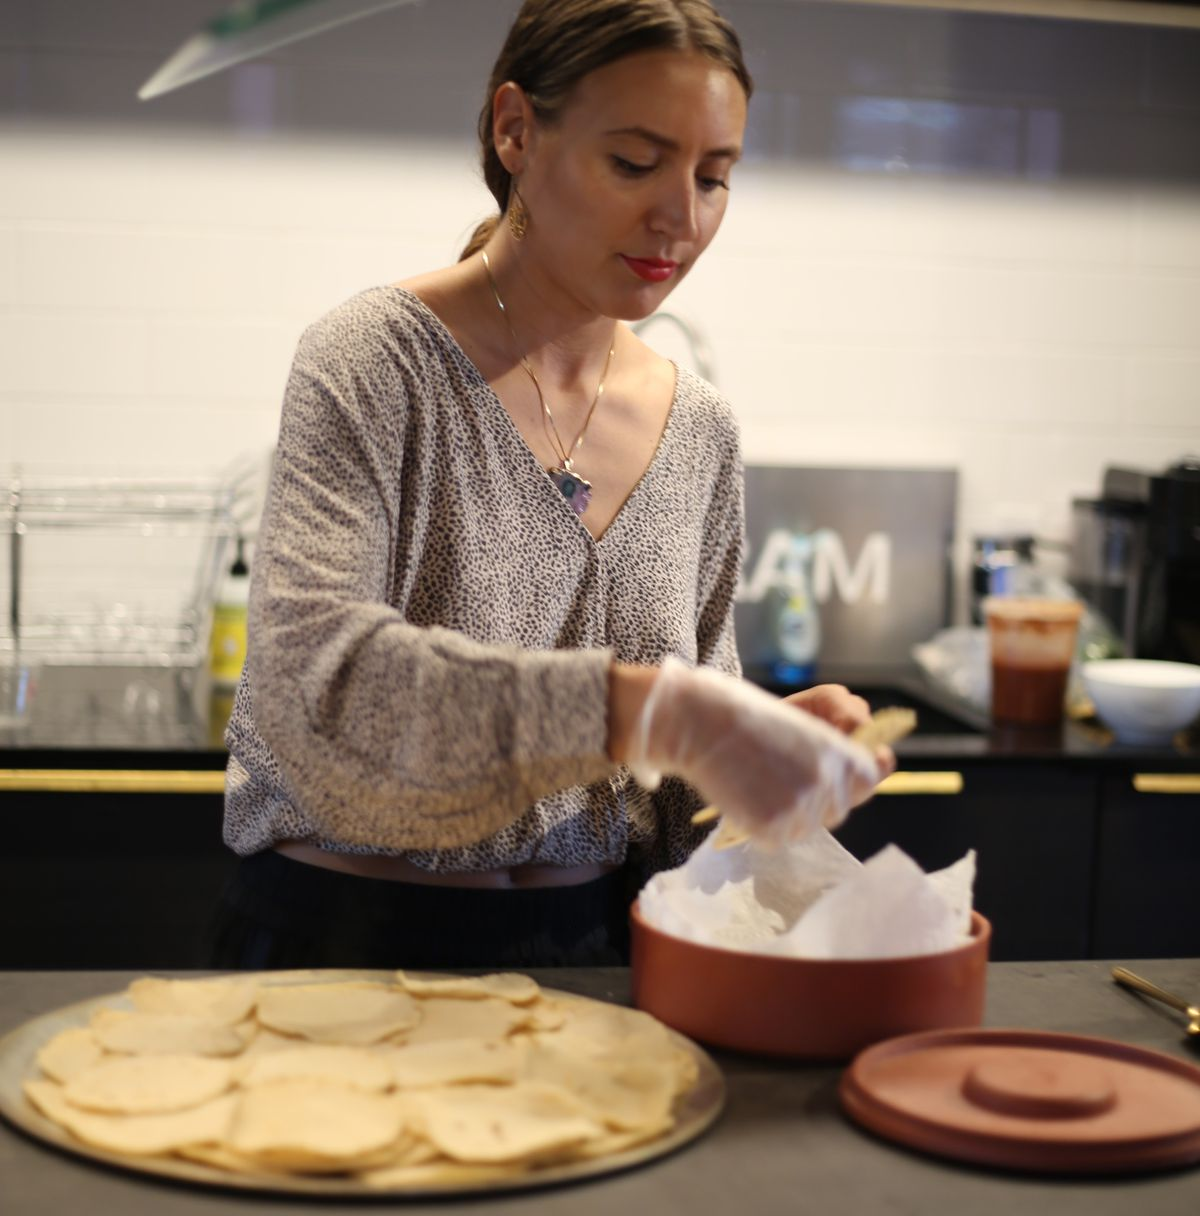 Breanne Delgado making tortillas.